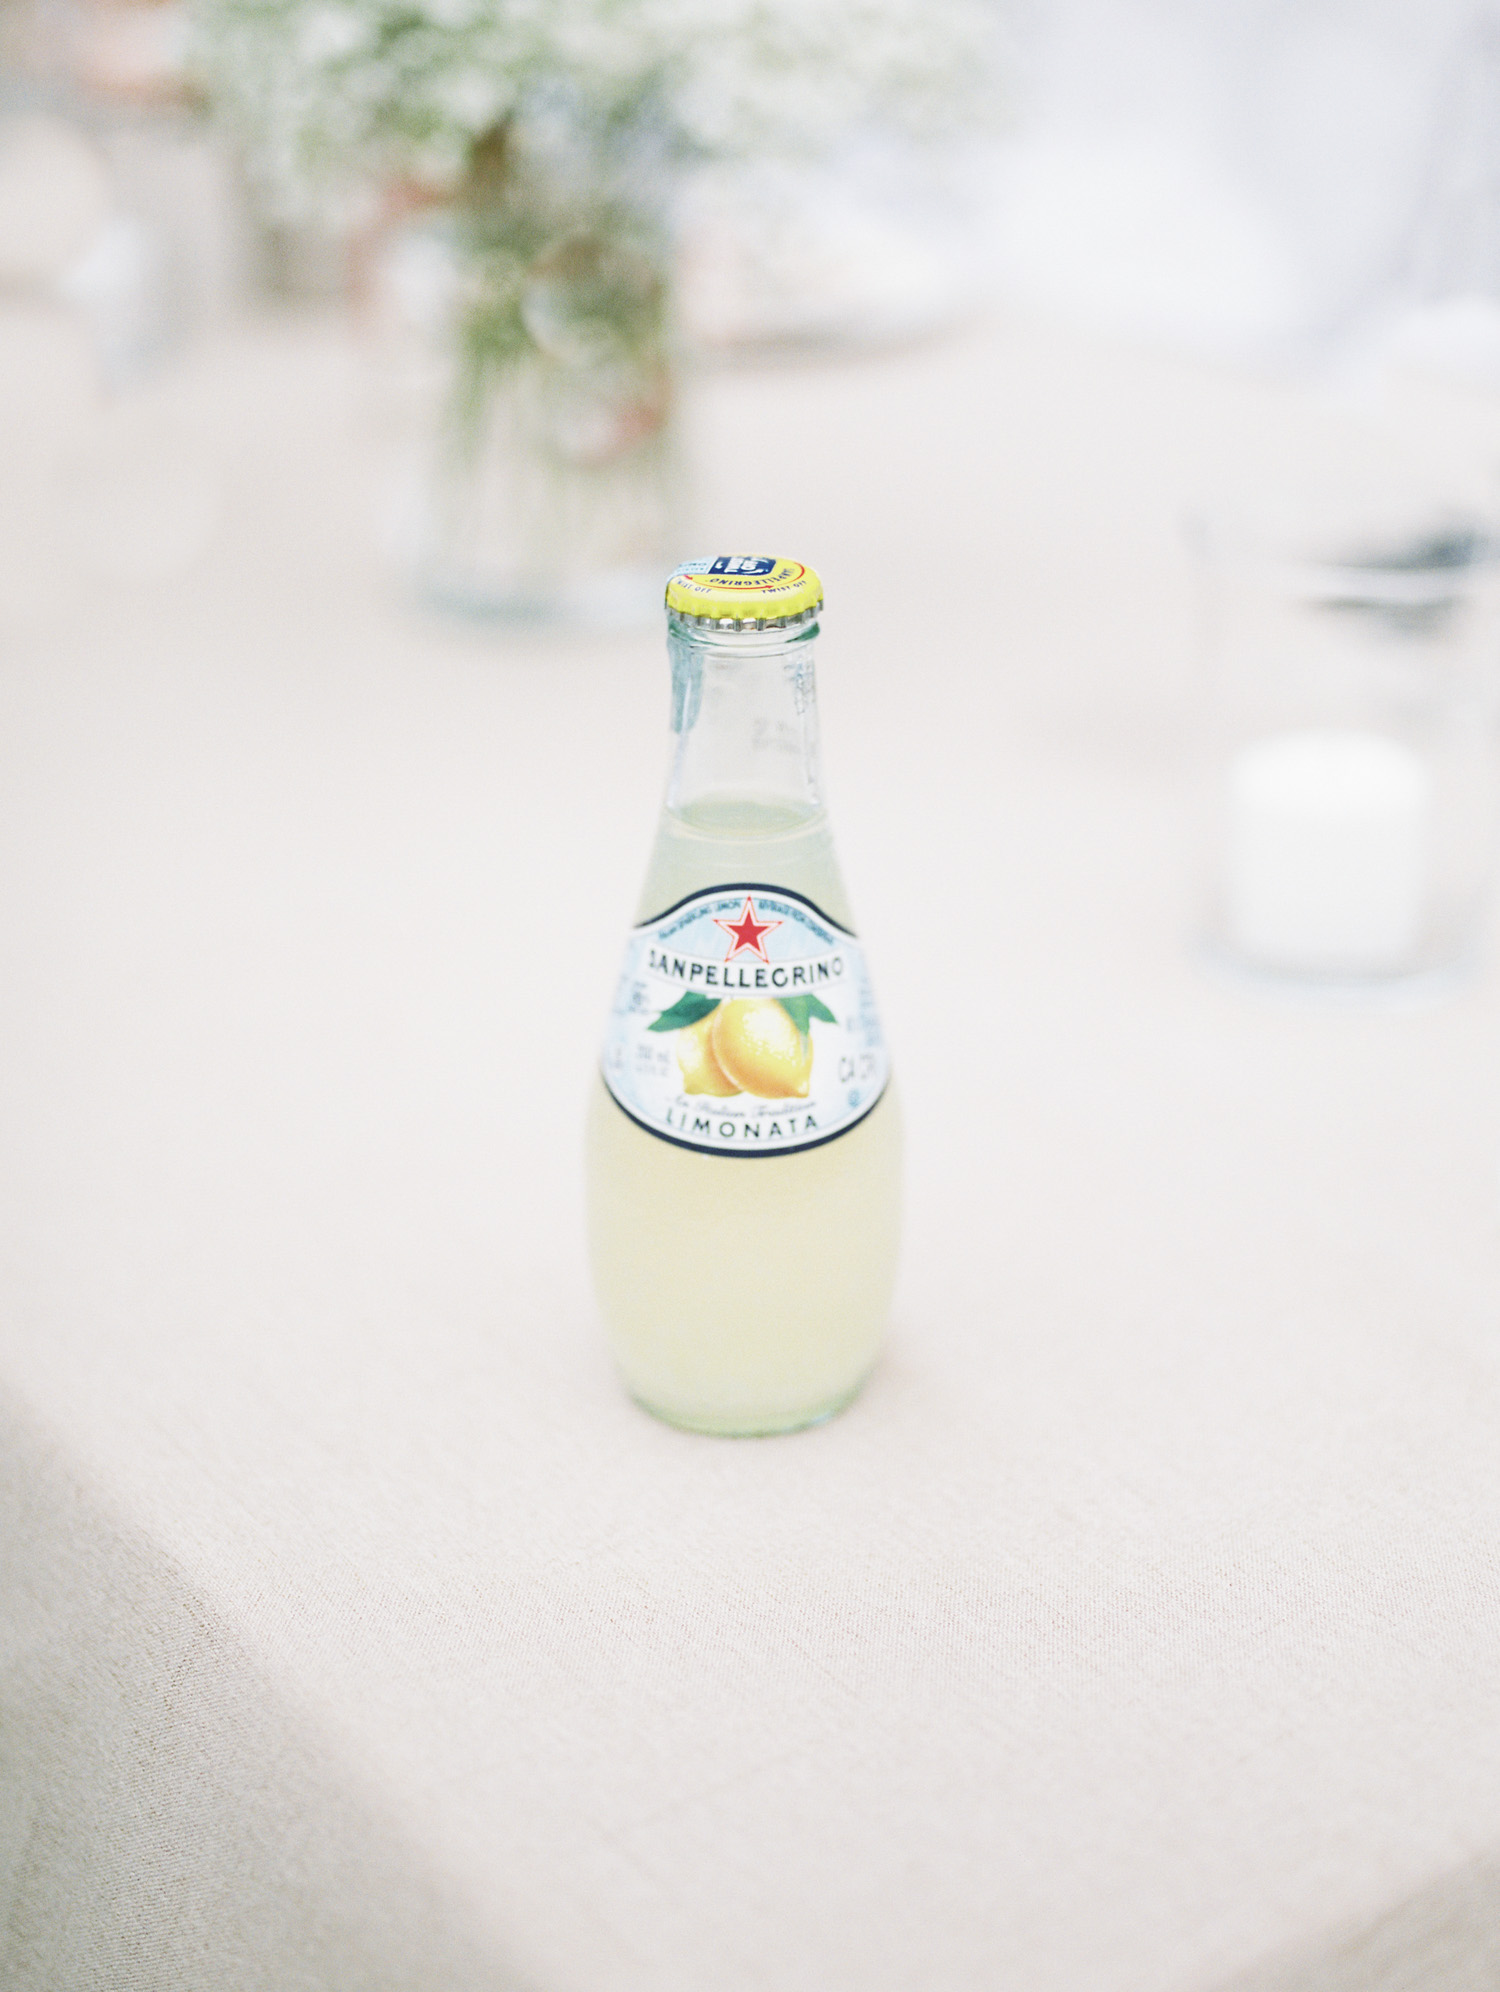 A bottle of san pellegrino sits on a table at a small Lake Michigan wedding celebration